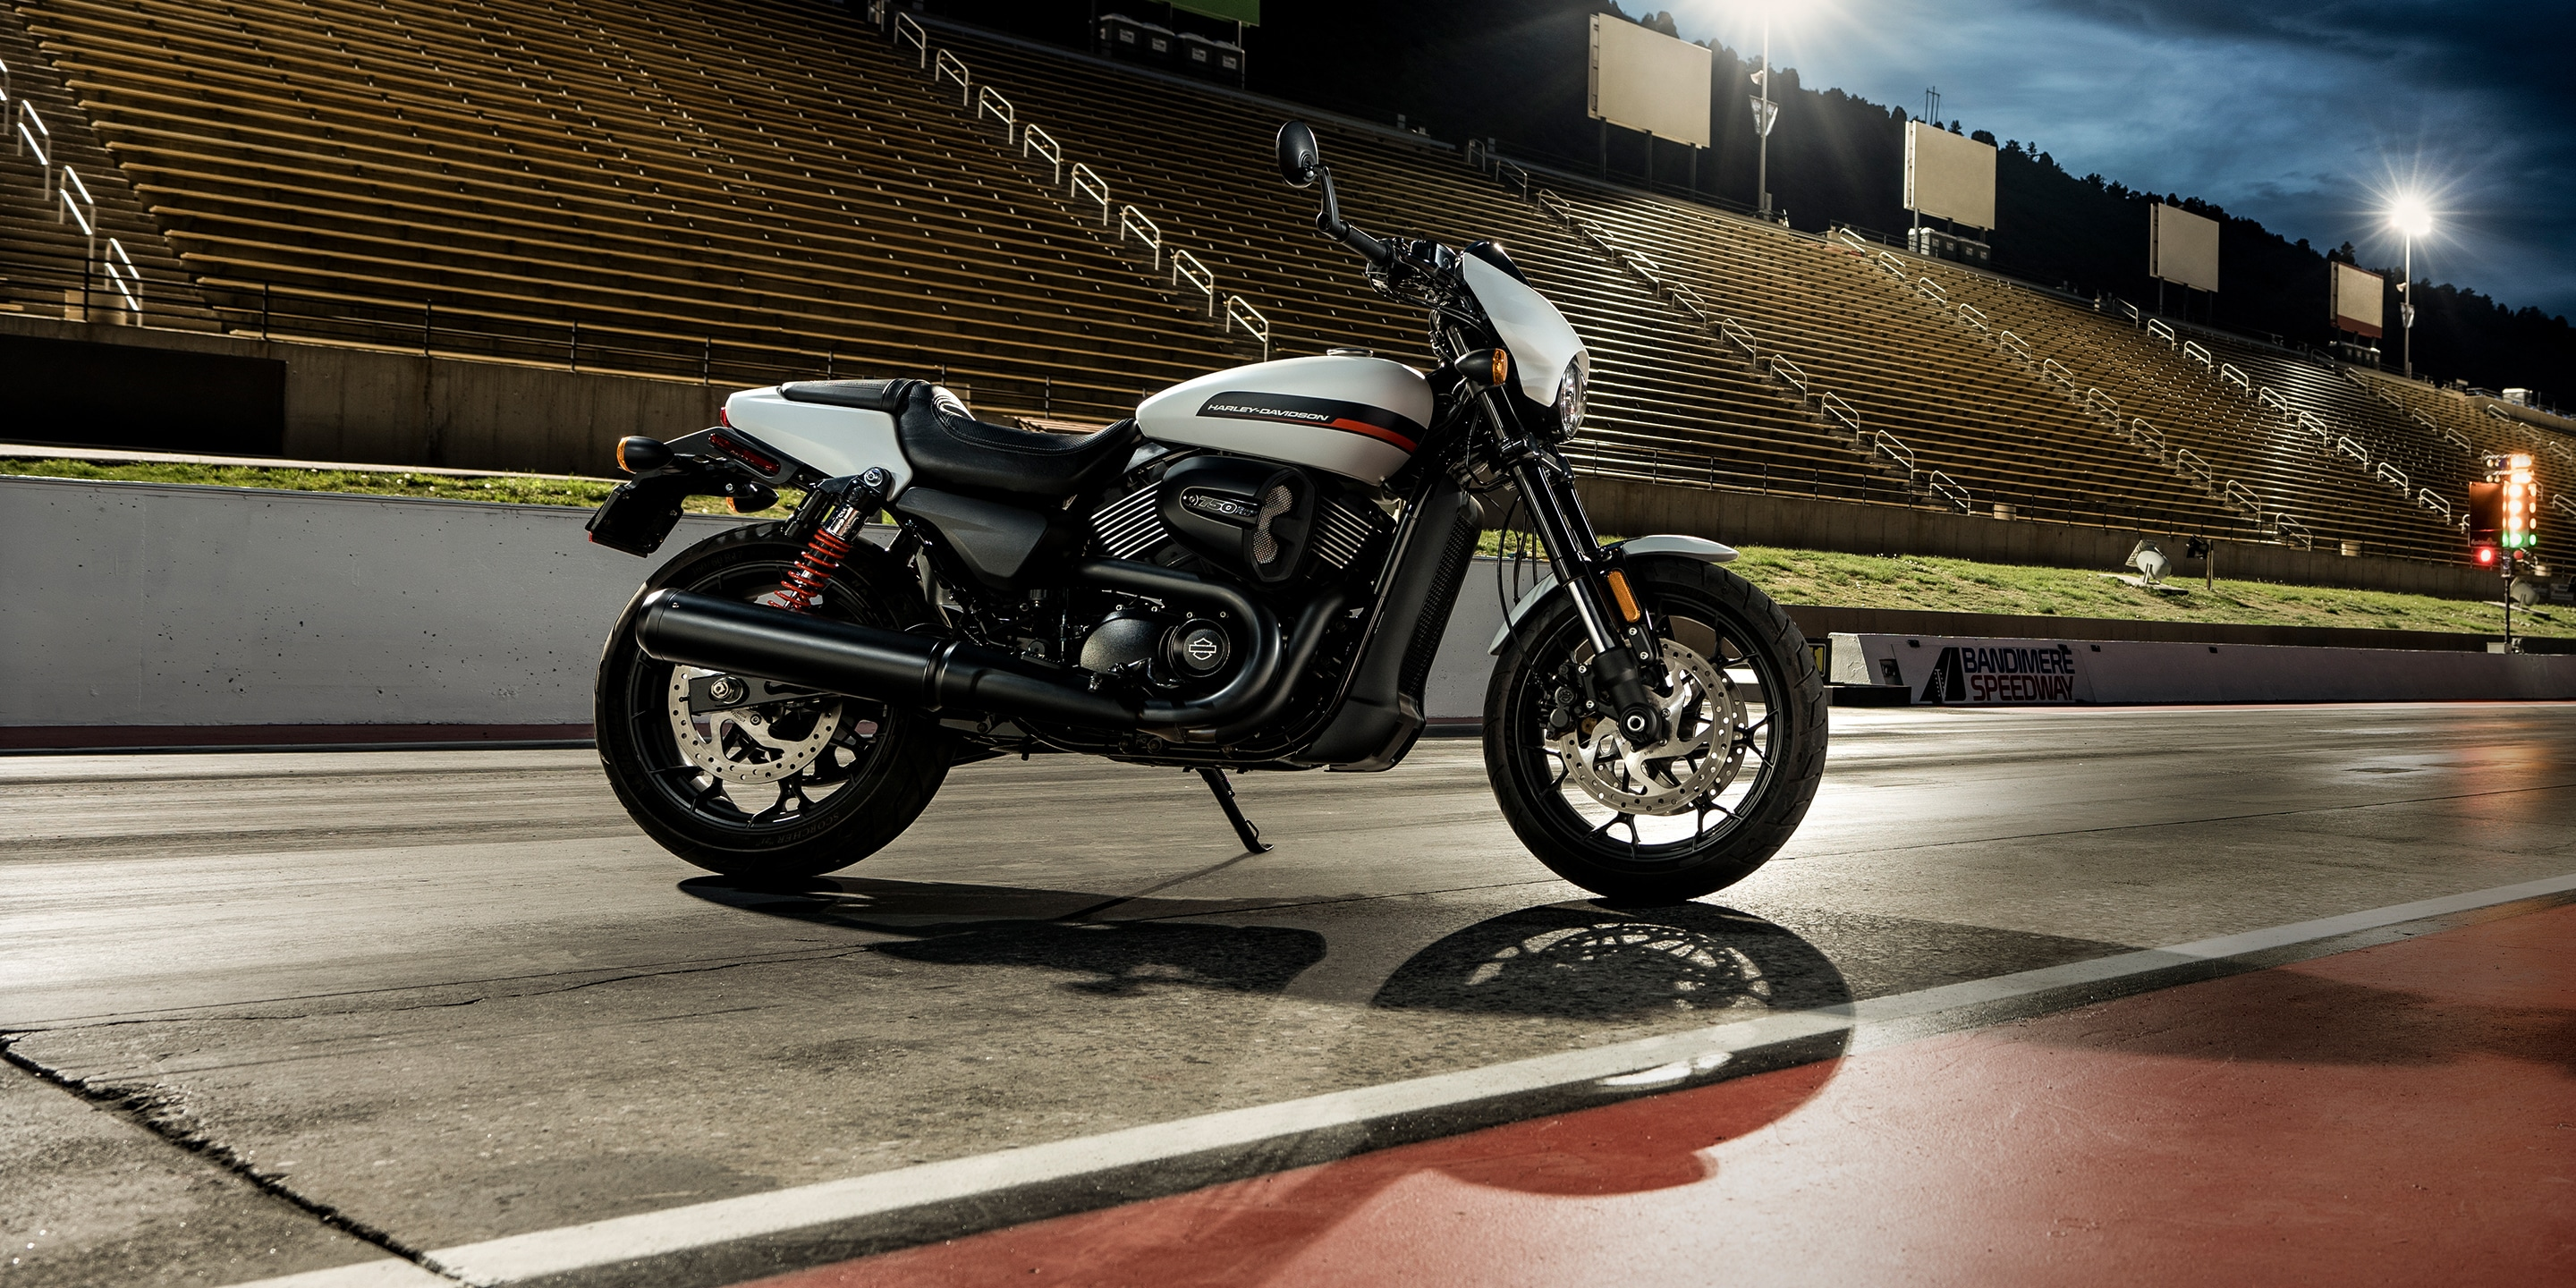 2019 Street Rod Motorcycle parked on race track